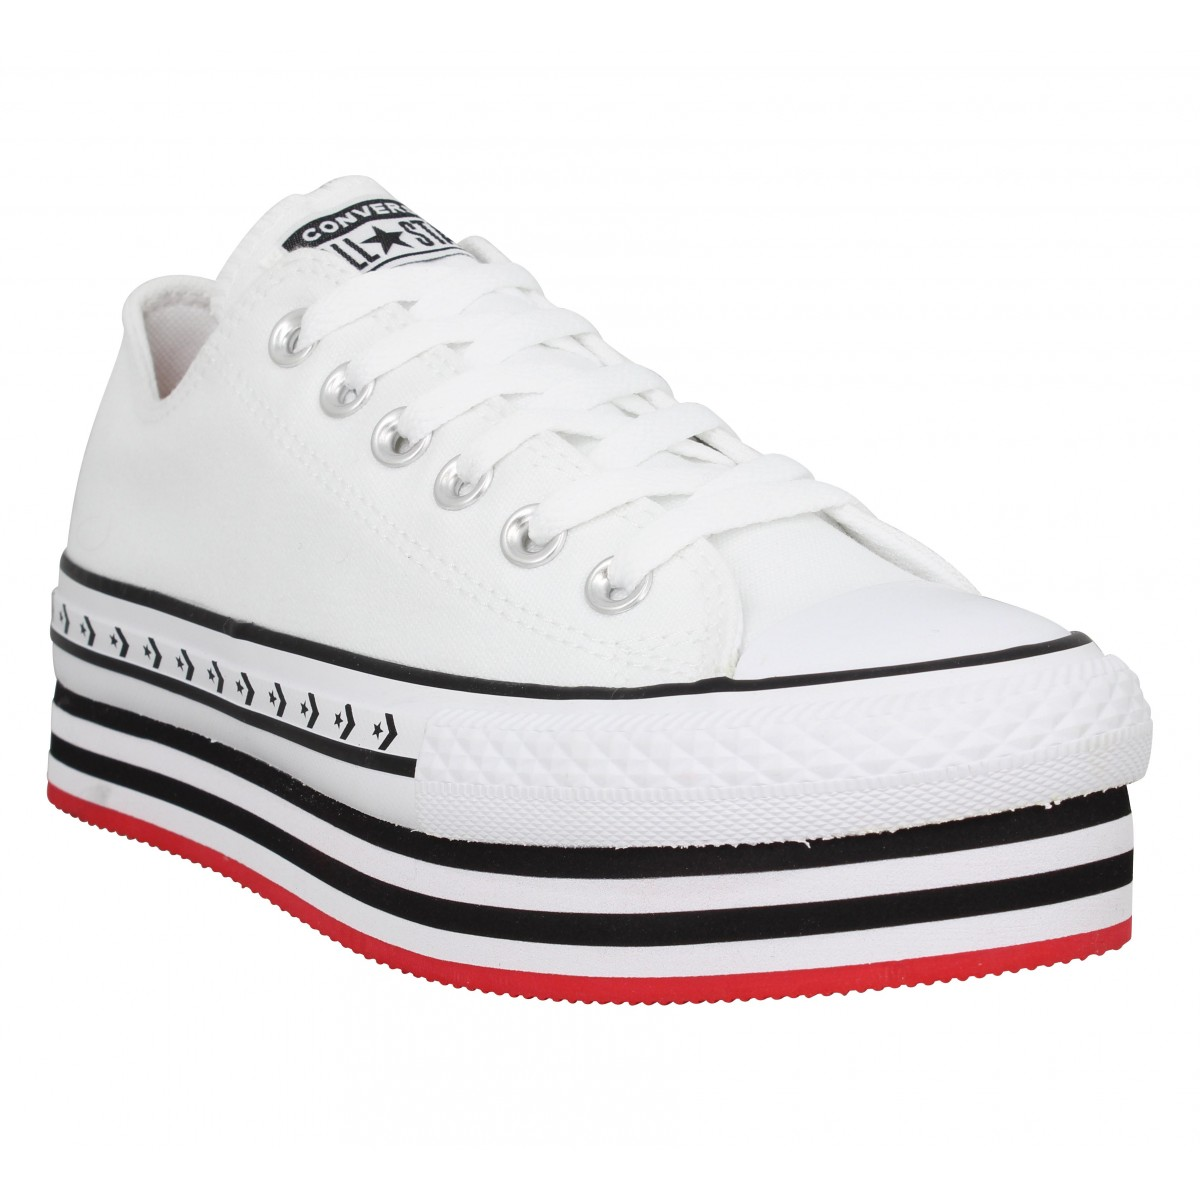 chaussures toile femme converse